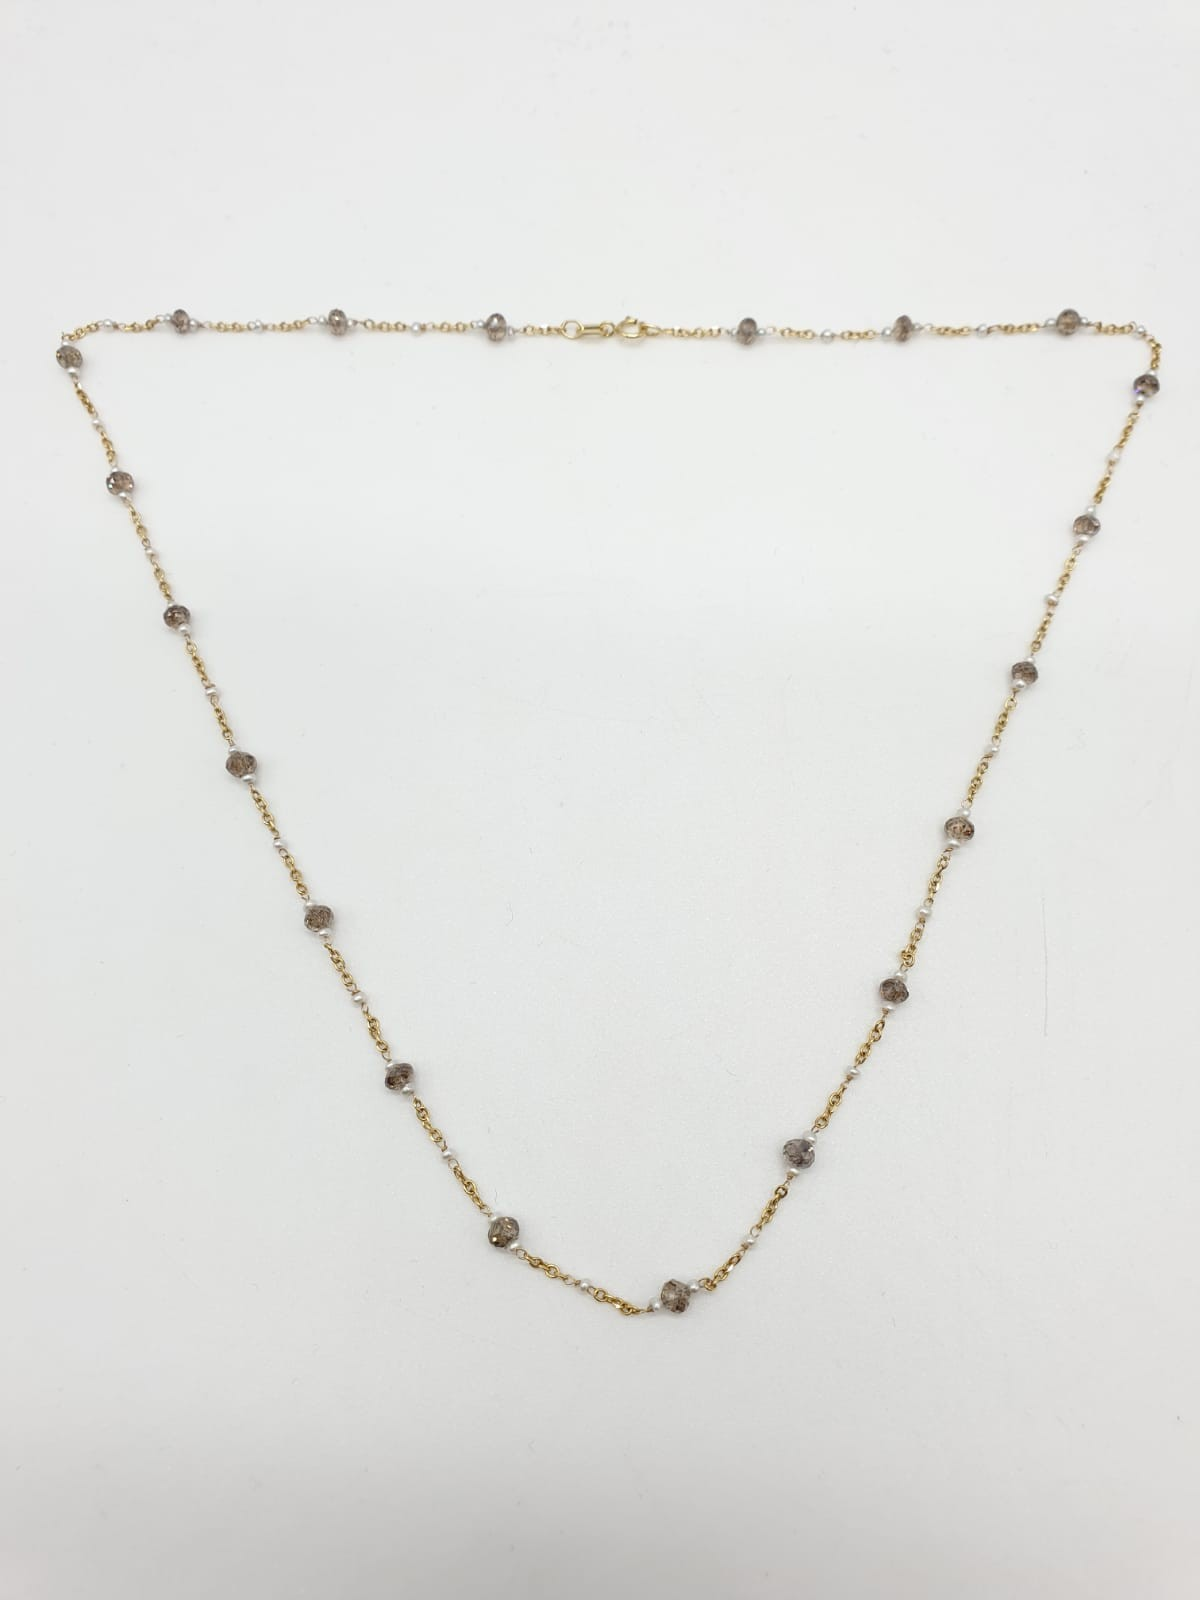 14ct gold brown diamond and pearl necklace with matching bracelet, total weight 5.6g and over 9ct - Image 4 of 6